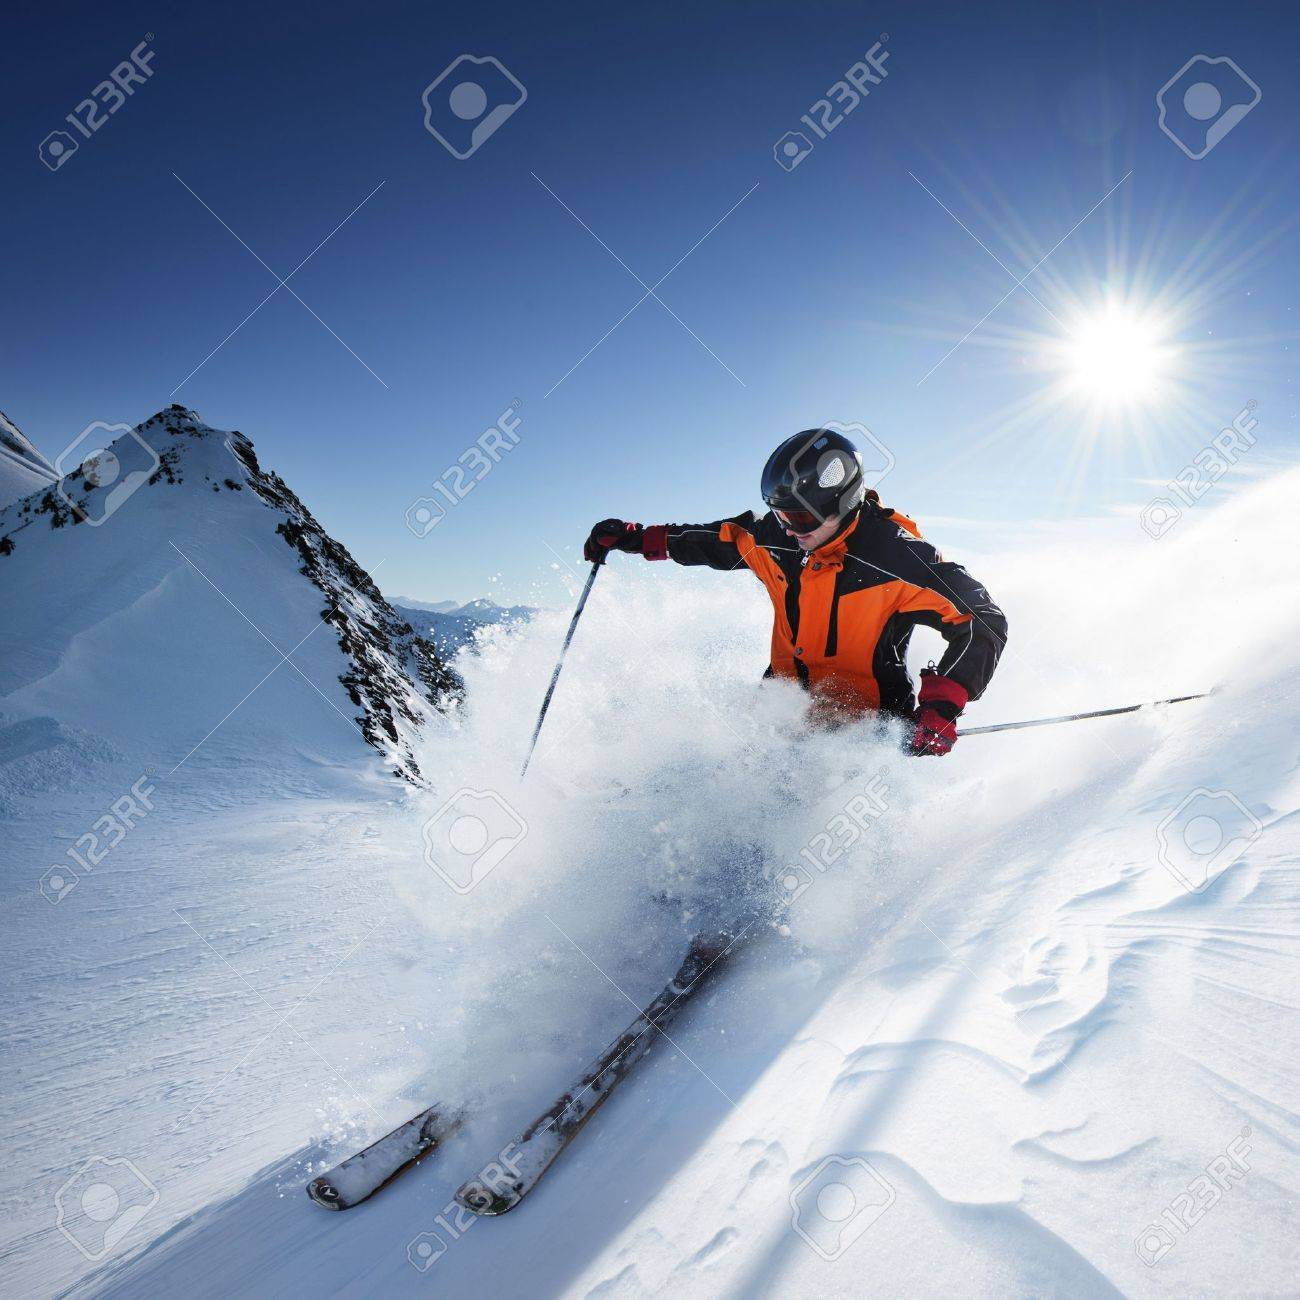 Skier in high mountains - 17753050